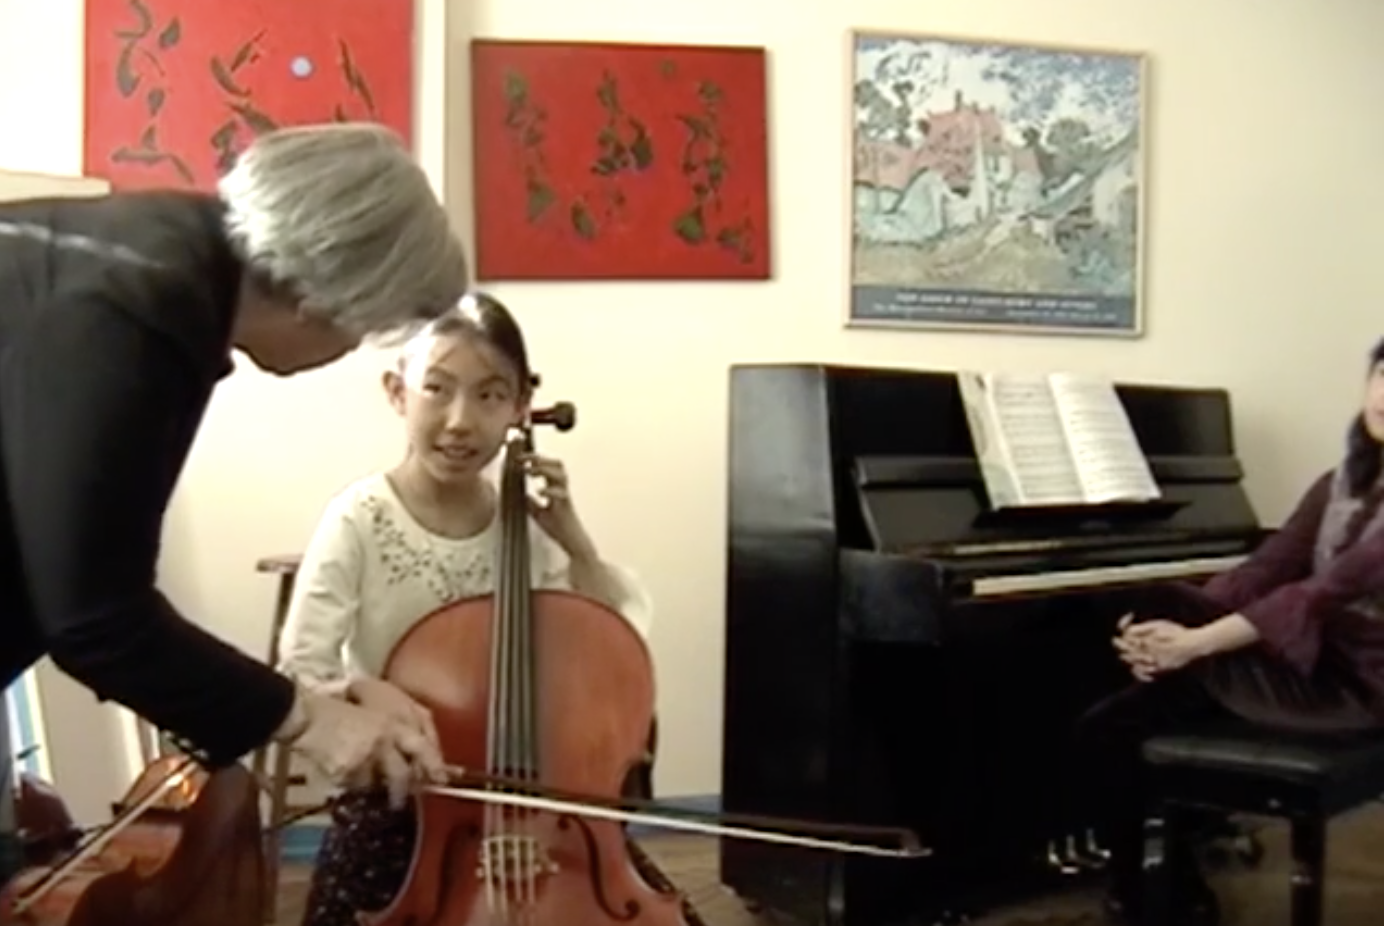 Cello Lesson with Renie. 2005, 72nd St New York, video still.